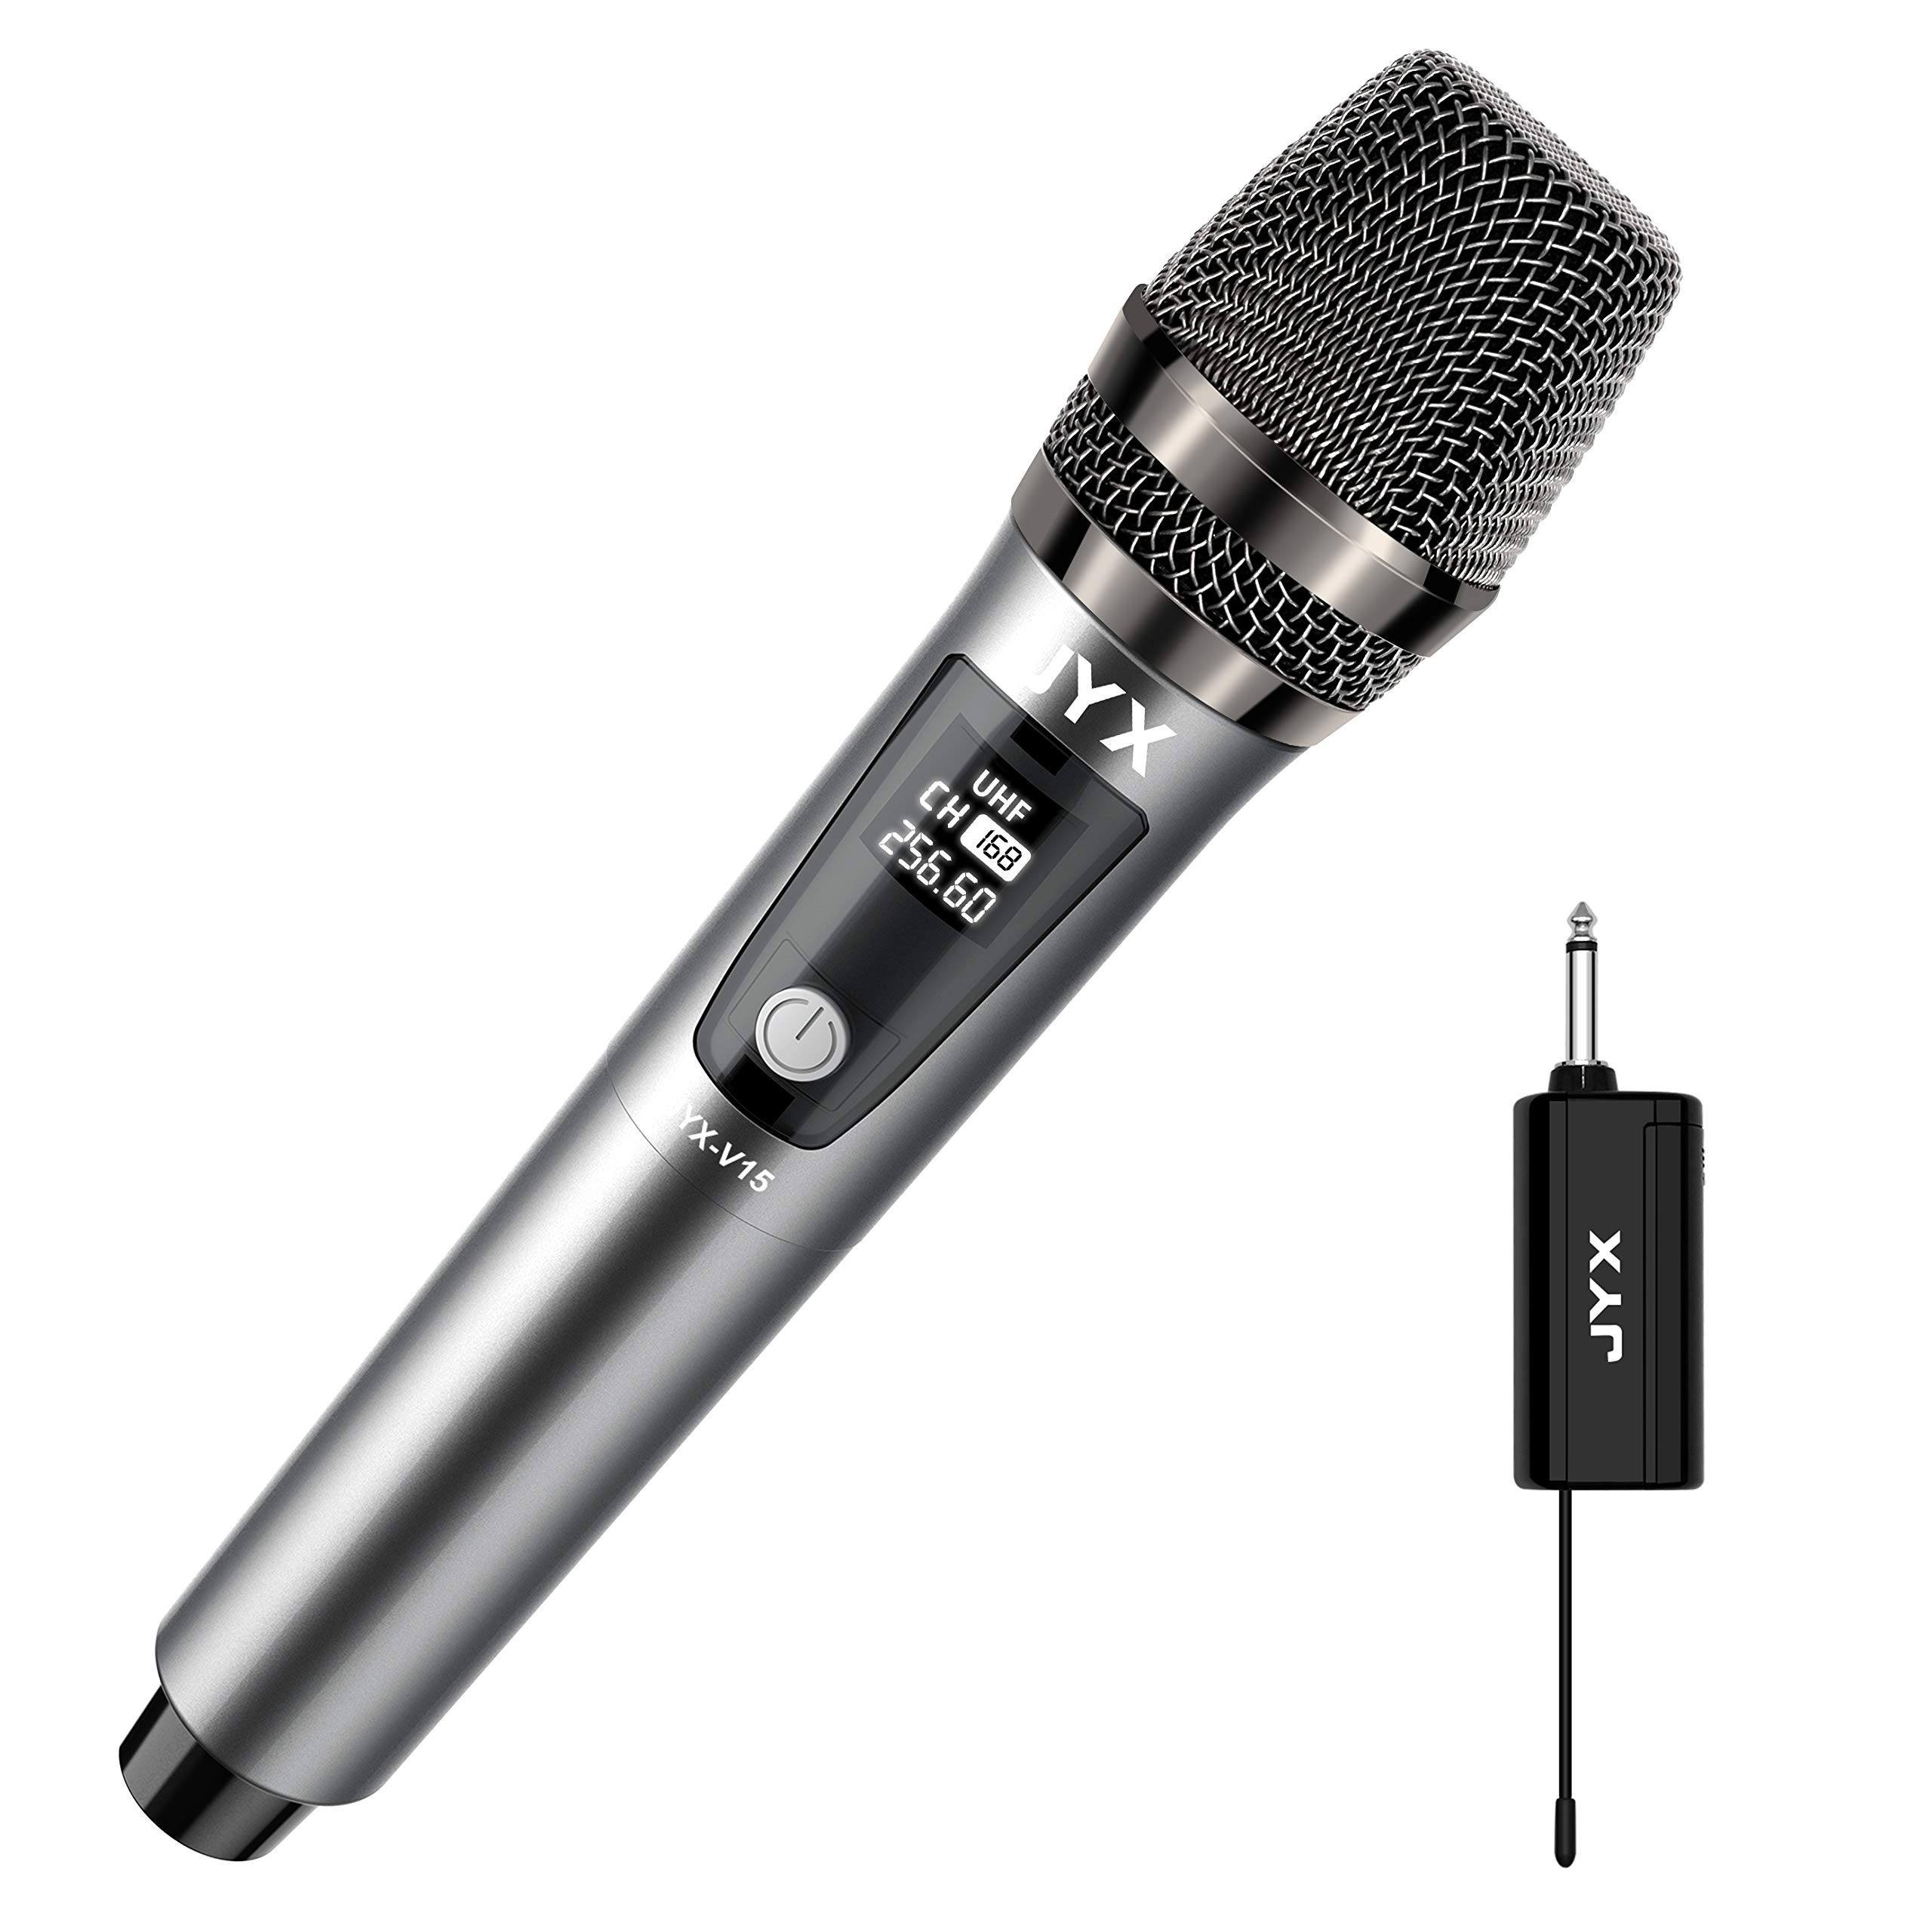 JYX Wireless Microphone, Dynamic Karaoke Microphone with Receiver and Anti-Slip Ring, 80ft Transmission Distance, Rechargeable Mic System for Karaoke Night, Meeting, Compere, Party